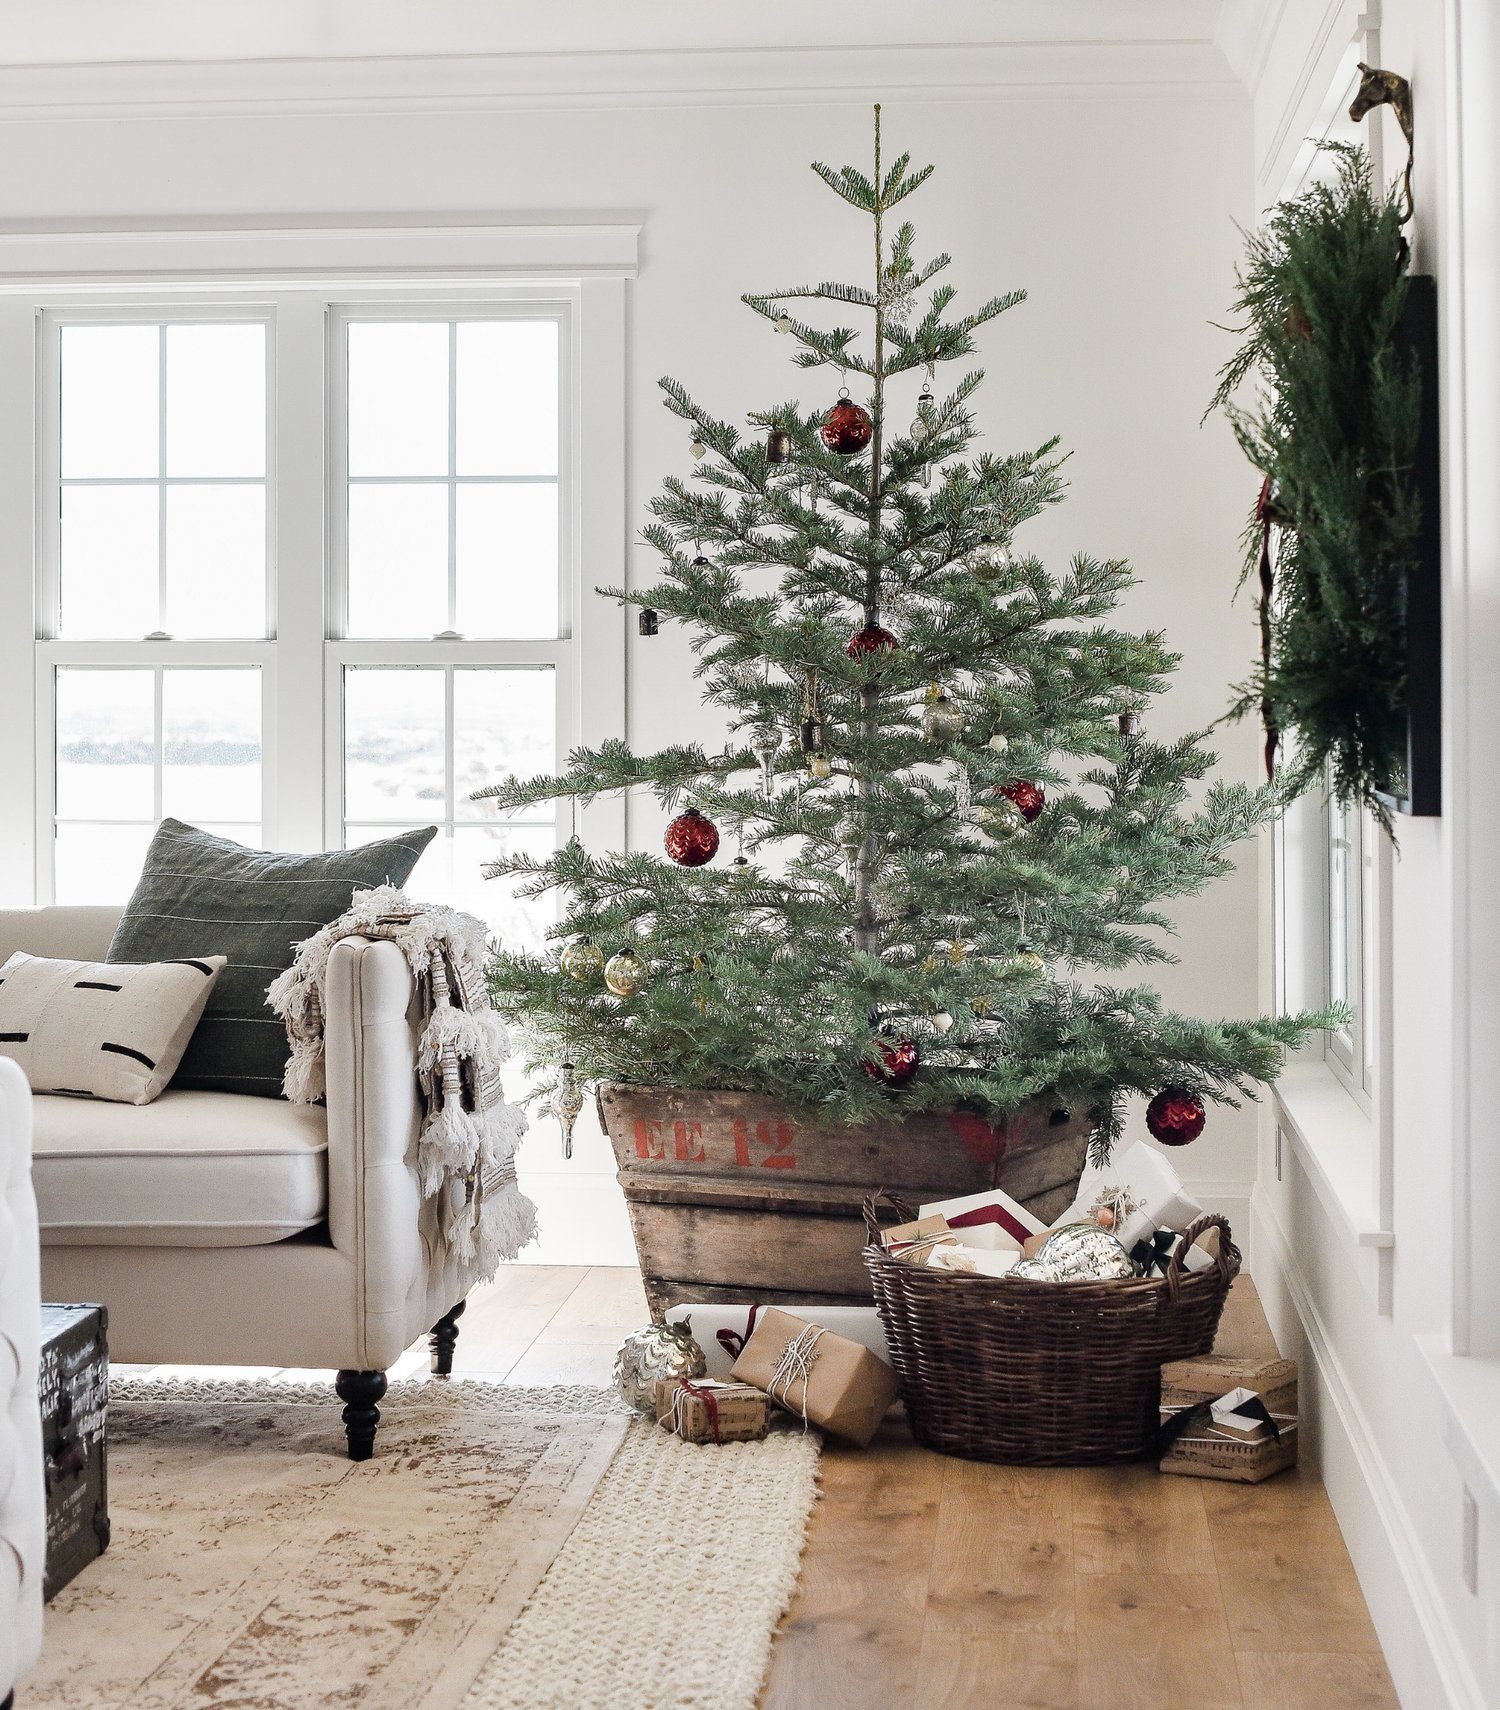 Top 10 Decorating Home Interiors 2018: Farmhouse Christmas Decor: Living Room & Tree Ideas